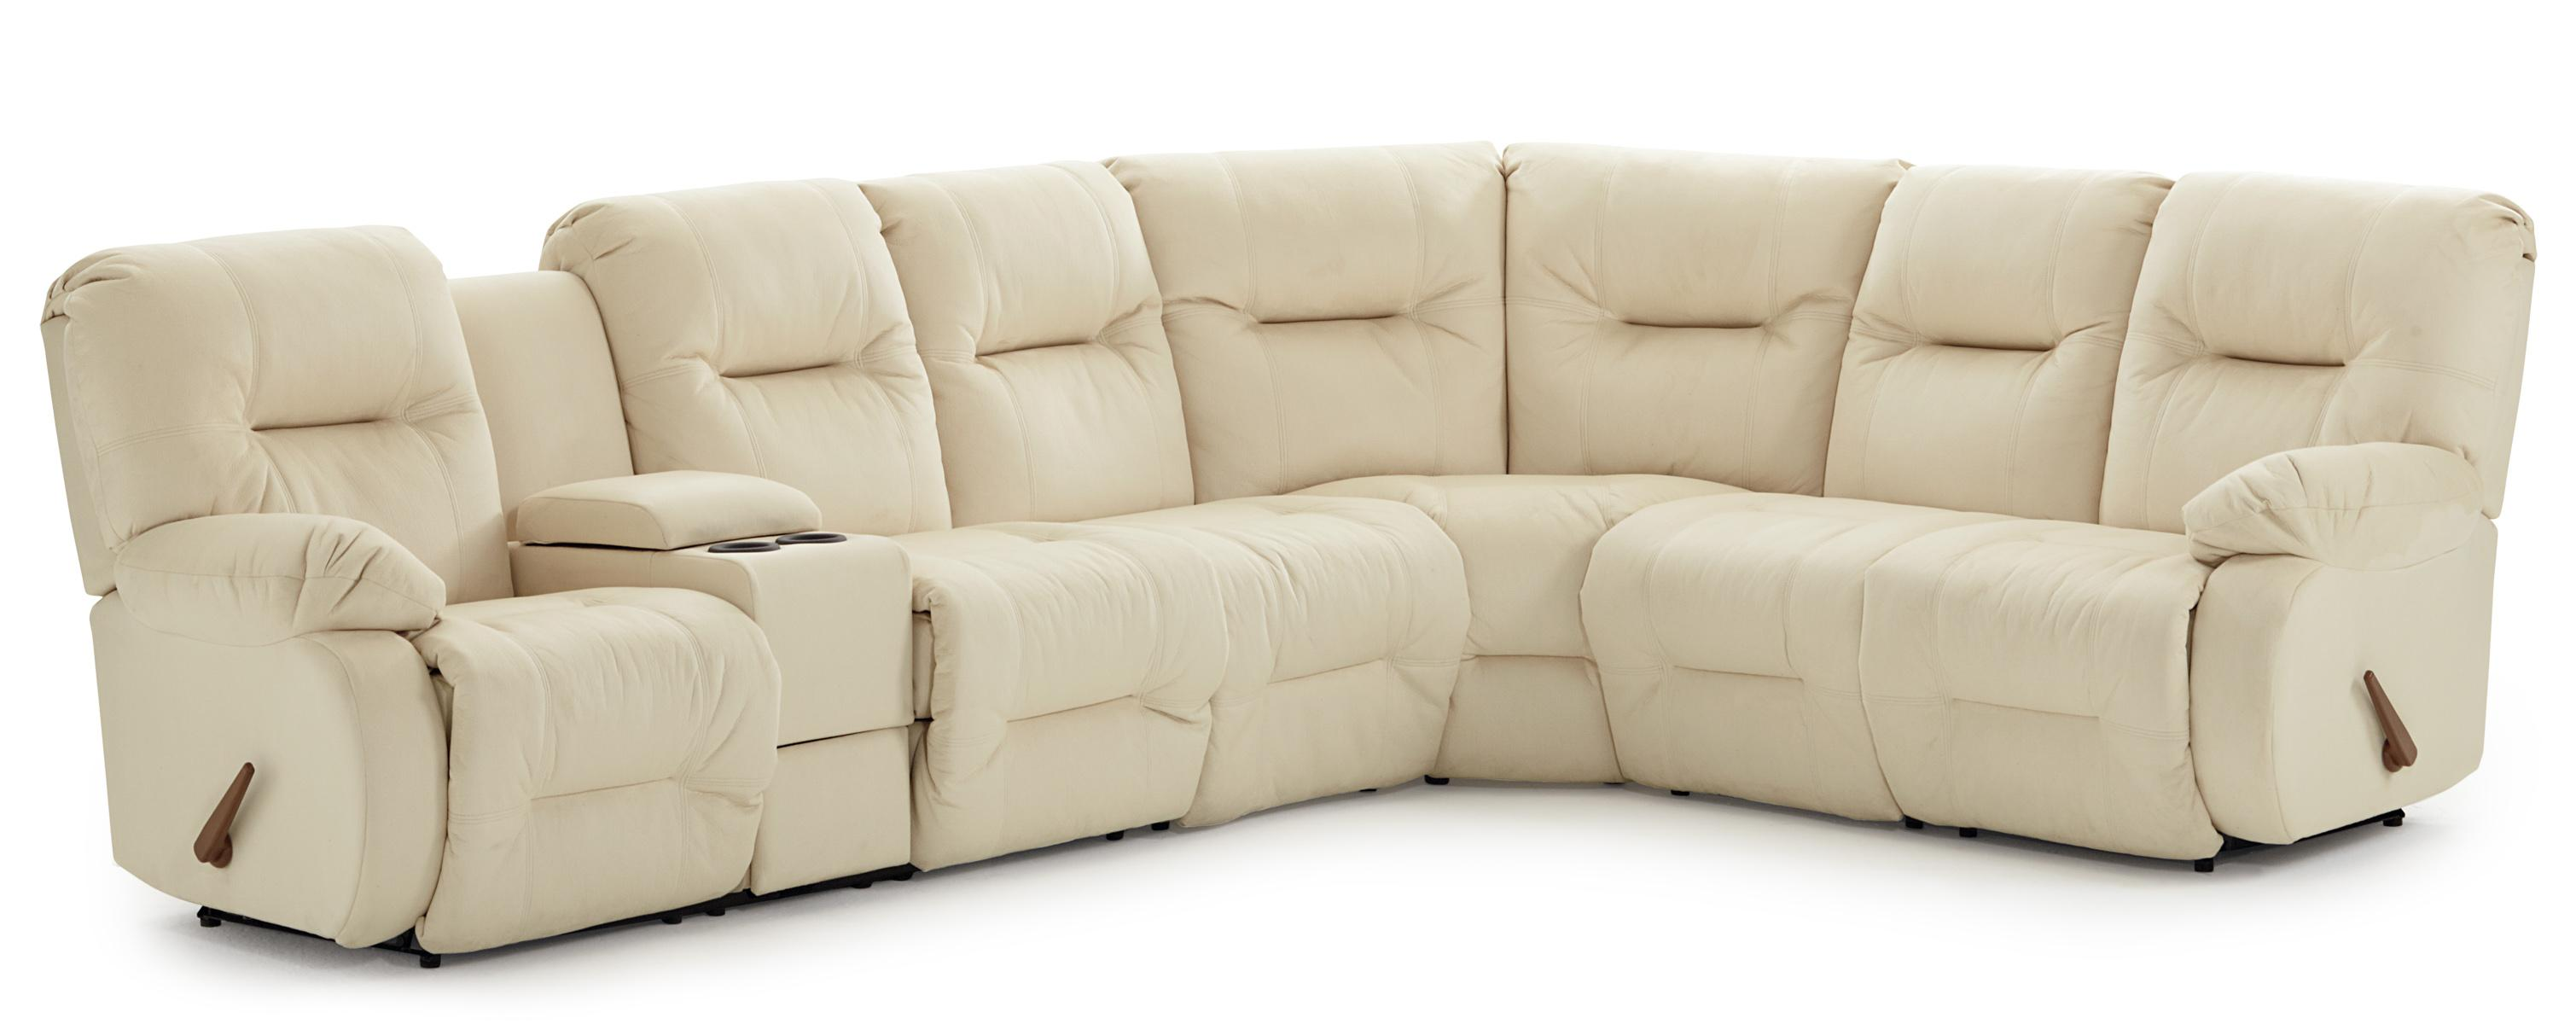 Casual Reclining Sectional Sofa With Storage Console And Cupholders